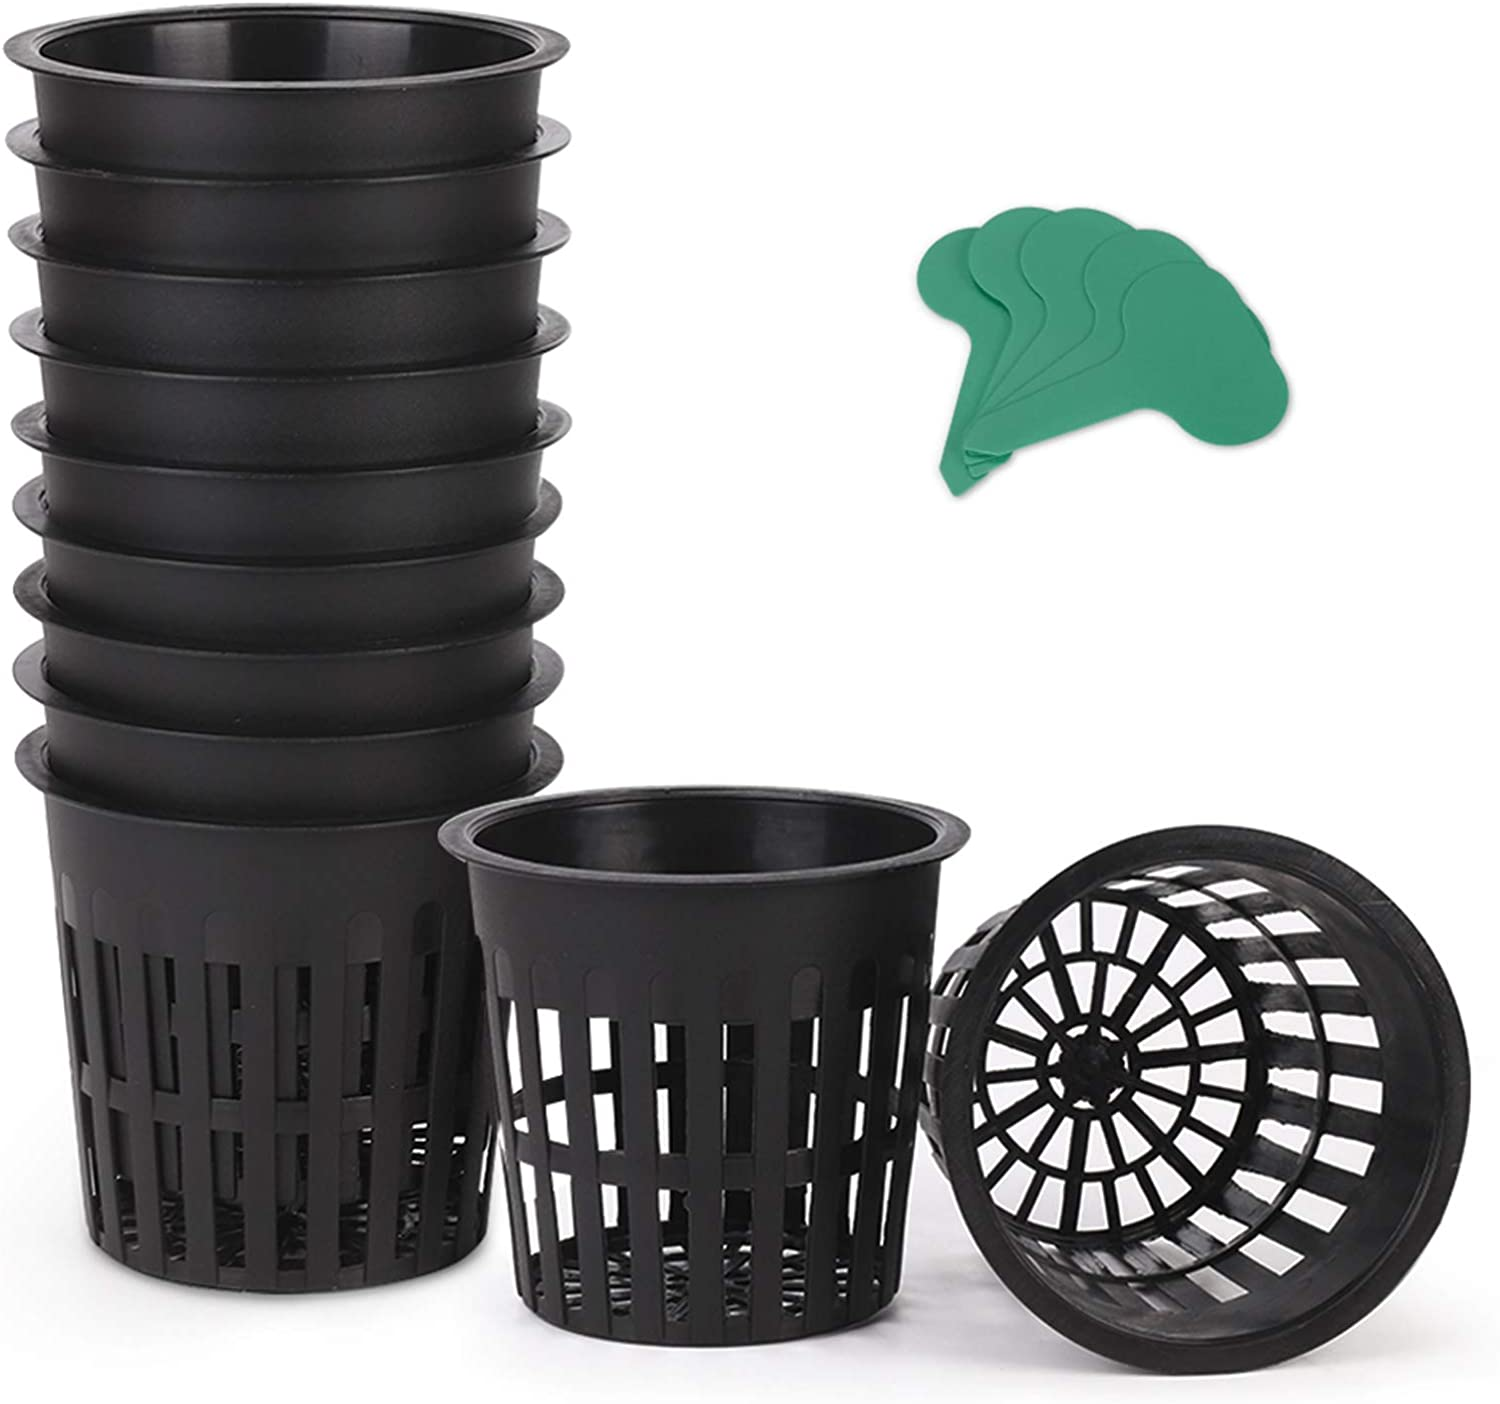 GROWNEER 100 Packs 4 Inches Net Cups Slotted Mesh Wide Lip with 10 Pcs Plant Labels Heavy Duty Filter Plant Net Pot Bucket Basket for Hydroponics Garden Containers